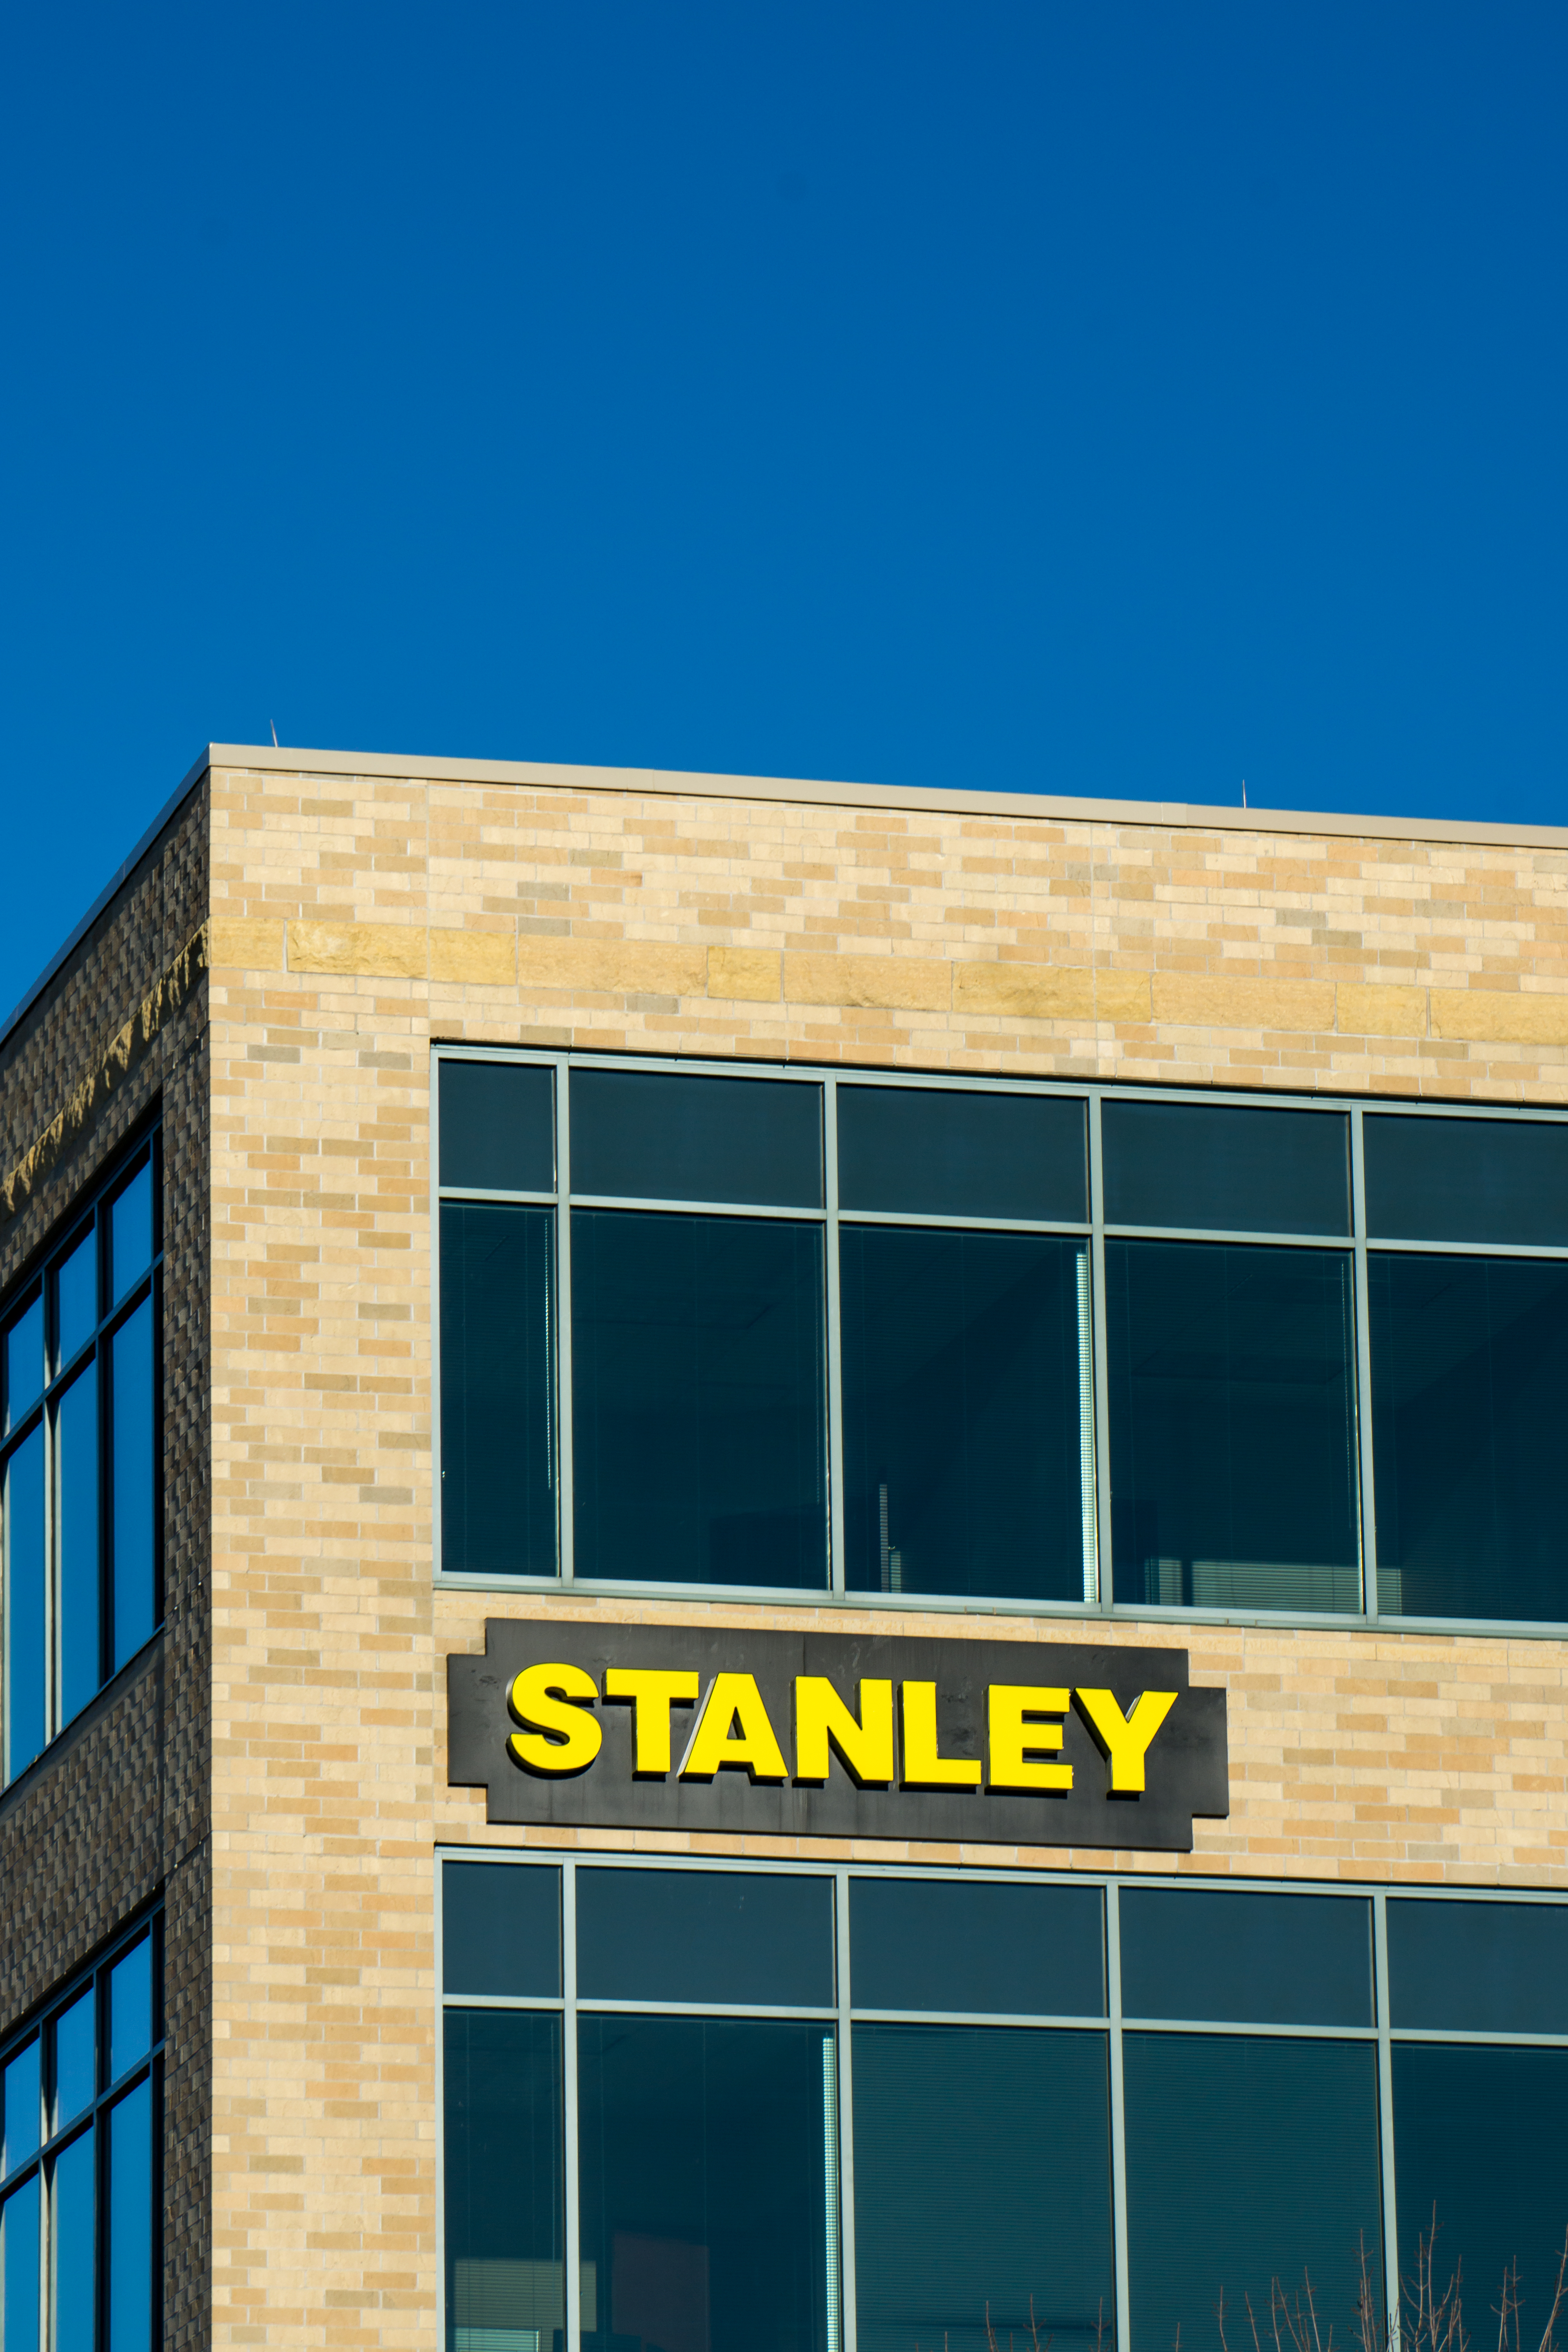 Maple Grove, United States - January 18, 2015: Stanley corporate headquarters and sign. Stanley Hand Tools is a brand of hand tools and a division of Stanley Black and Decker.